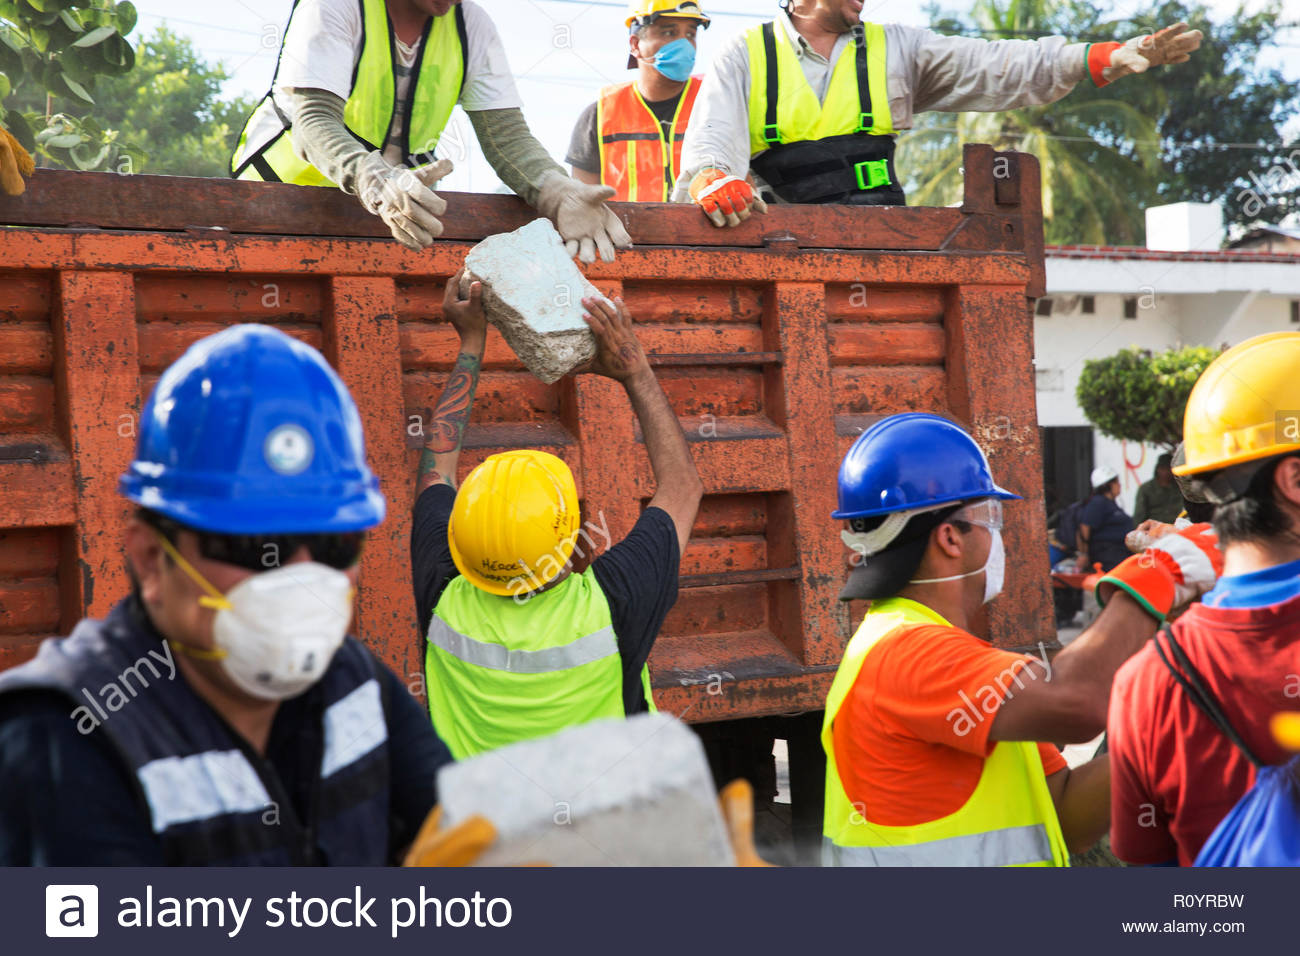 Teams of volunteers clear rocks and rubble after the small Mexican town of Jojutla was hit by a huge earthquake. - Stock Image